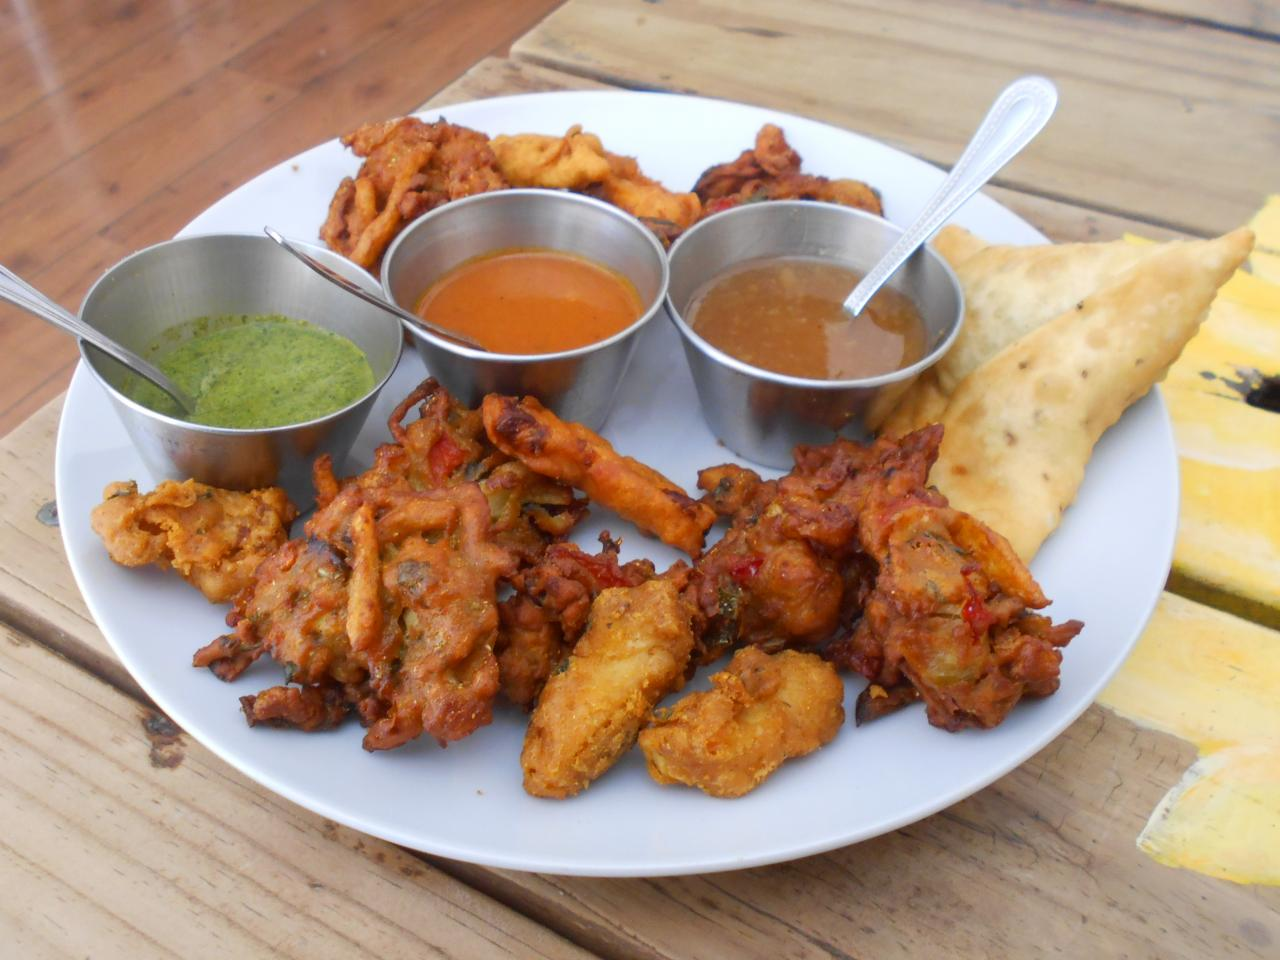 The deep-fried combo with three sauces